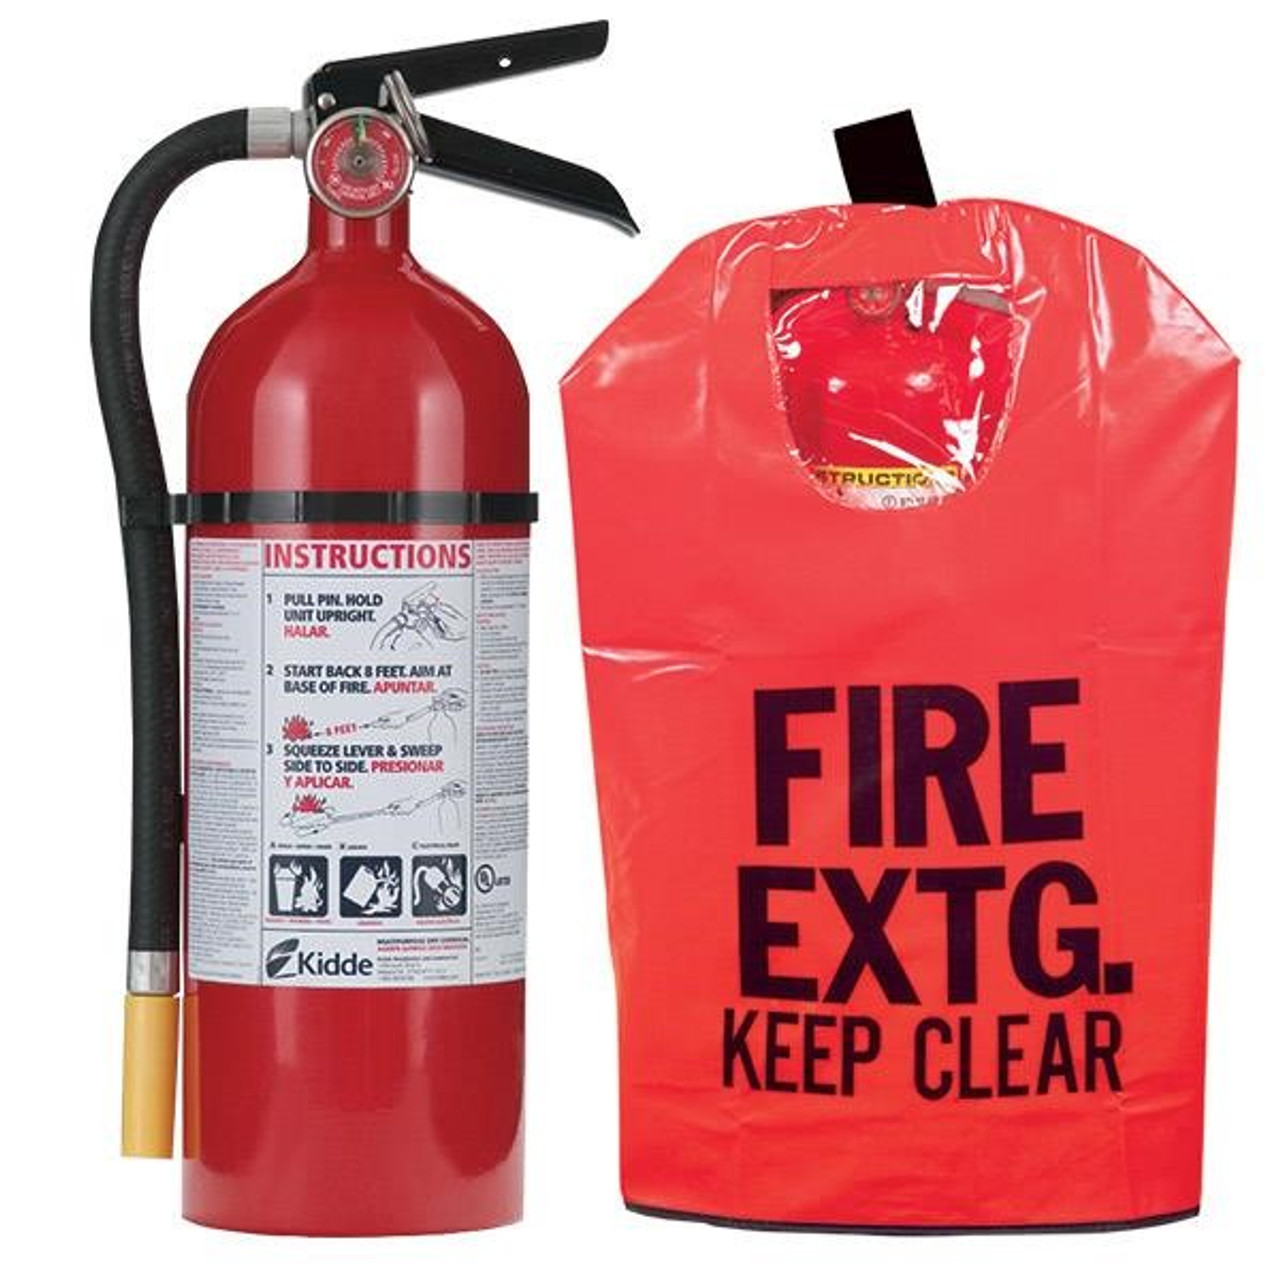 2 Pack 5 lb ABC Pro Line Fire Extinguisher w//Heavy-Duty Fire Extinguisher Cover